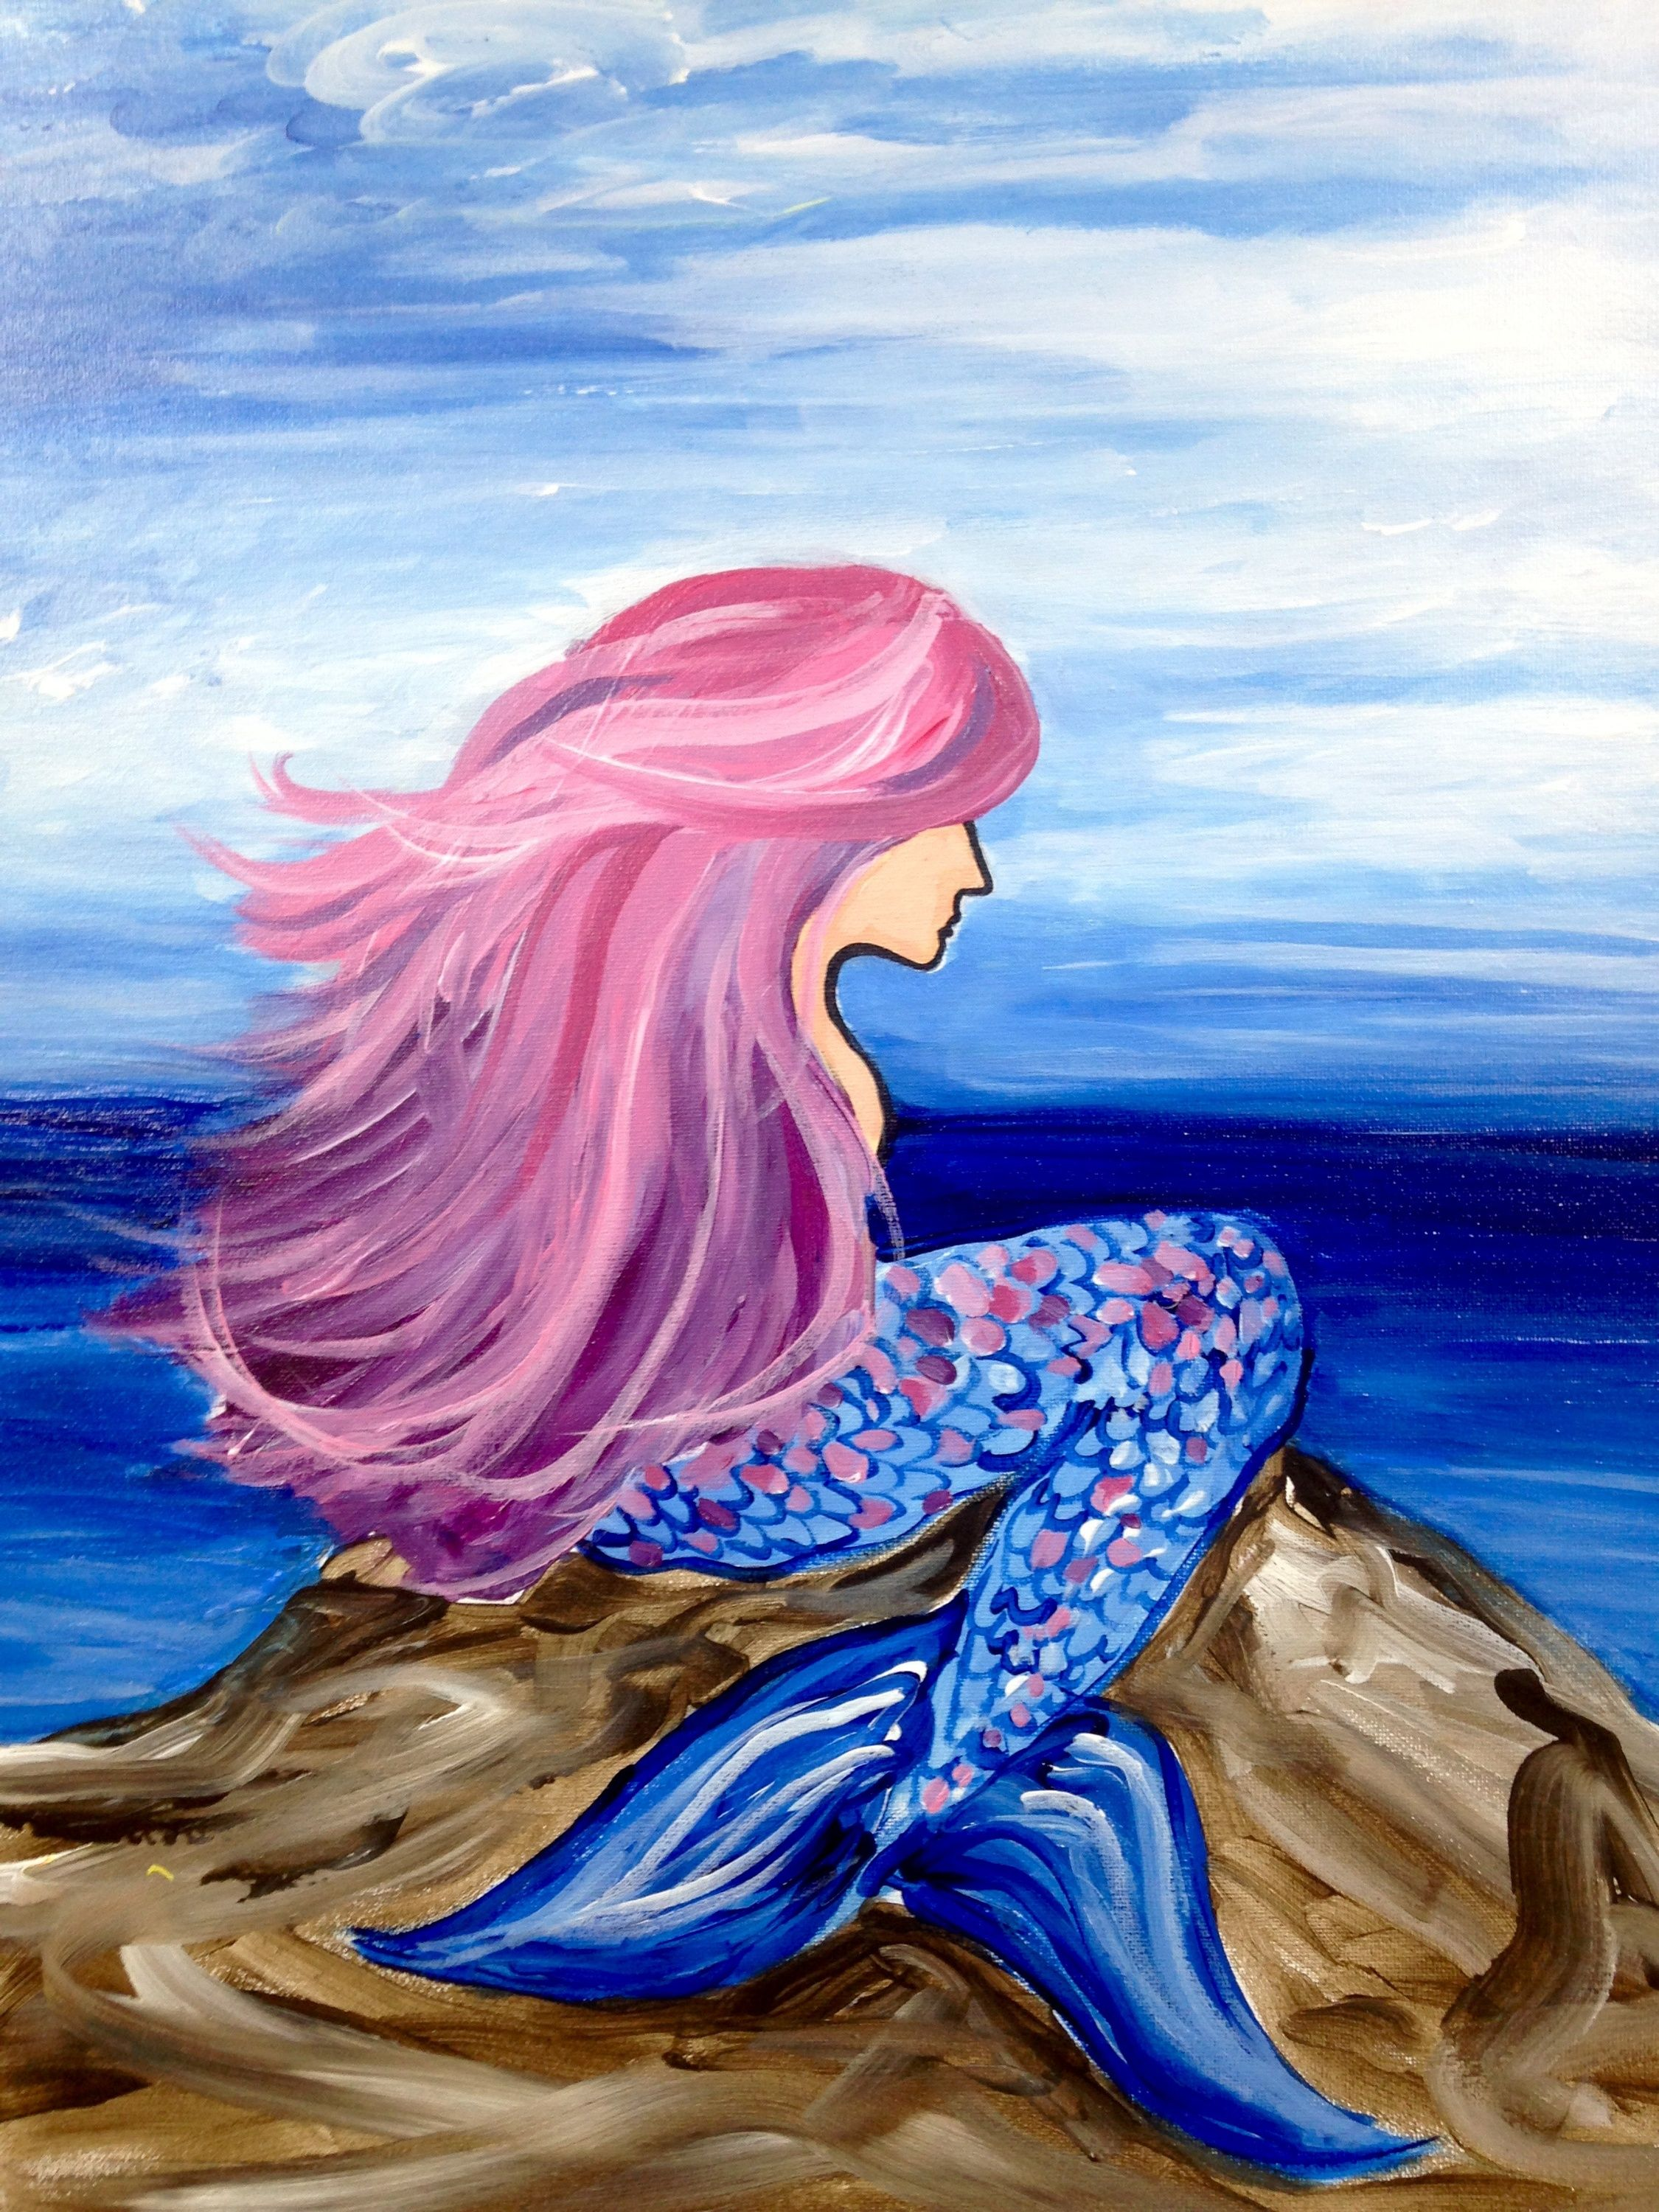 Not all mermaids have bright red hair, beautiful singing ...